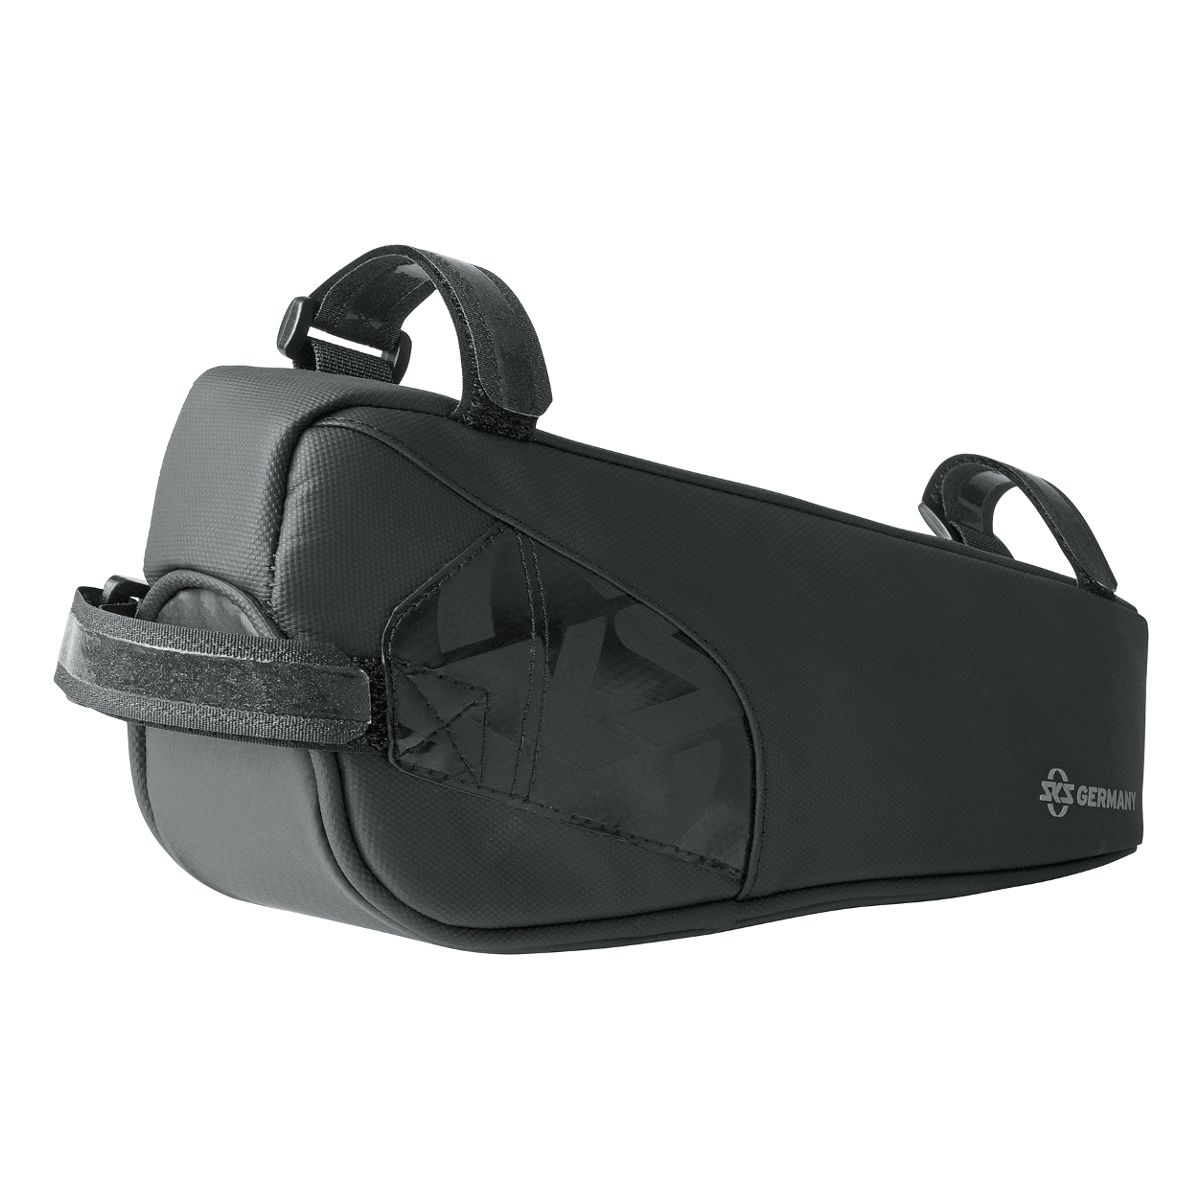 SKS Germany Explorer Edge top tube bag | Frame bags